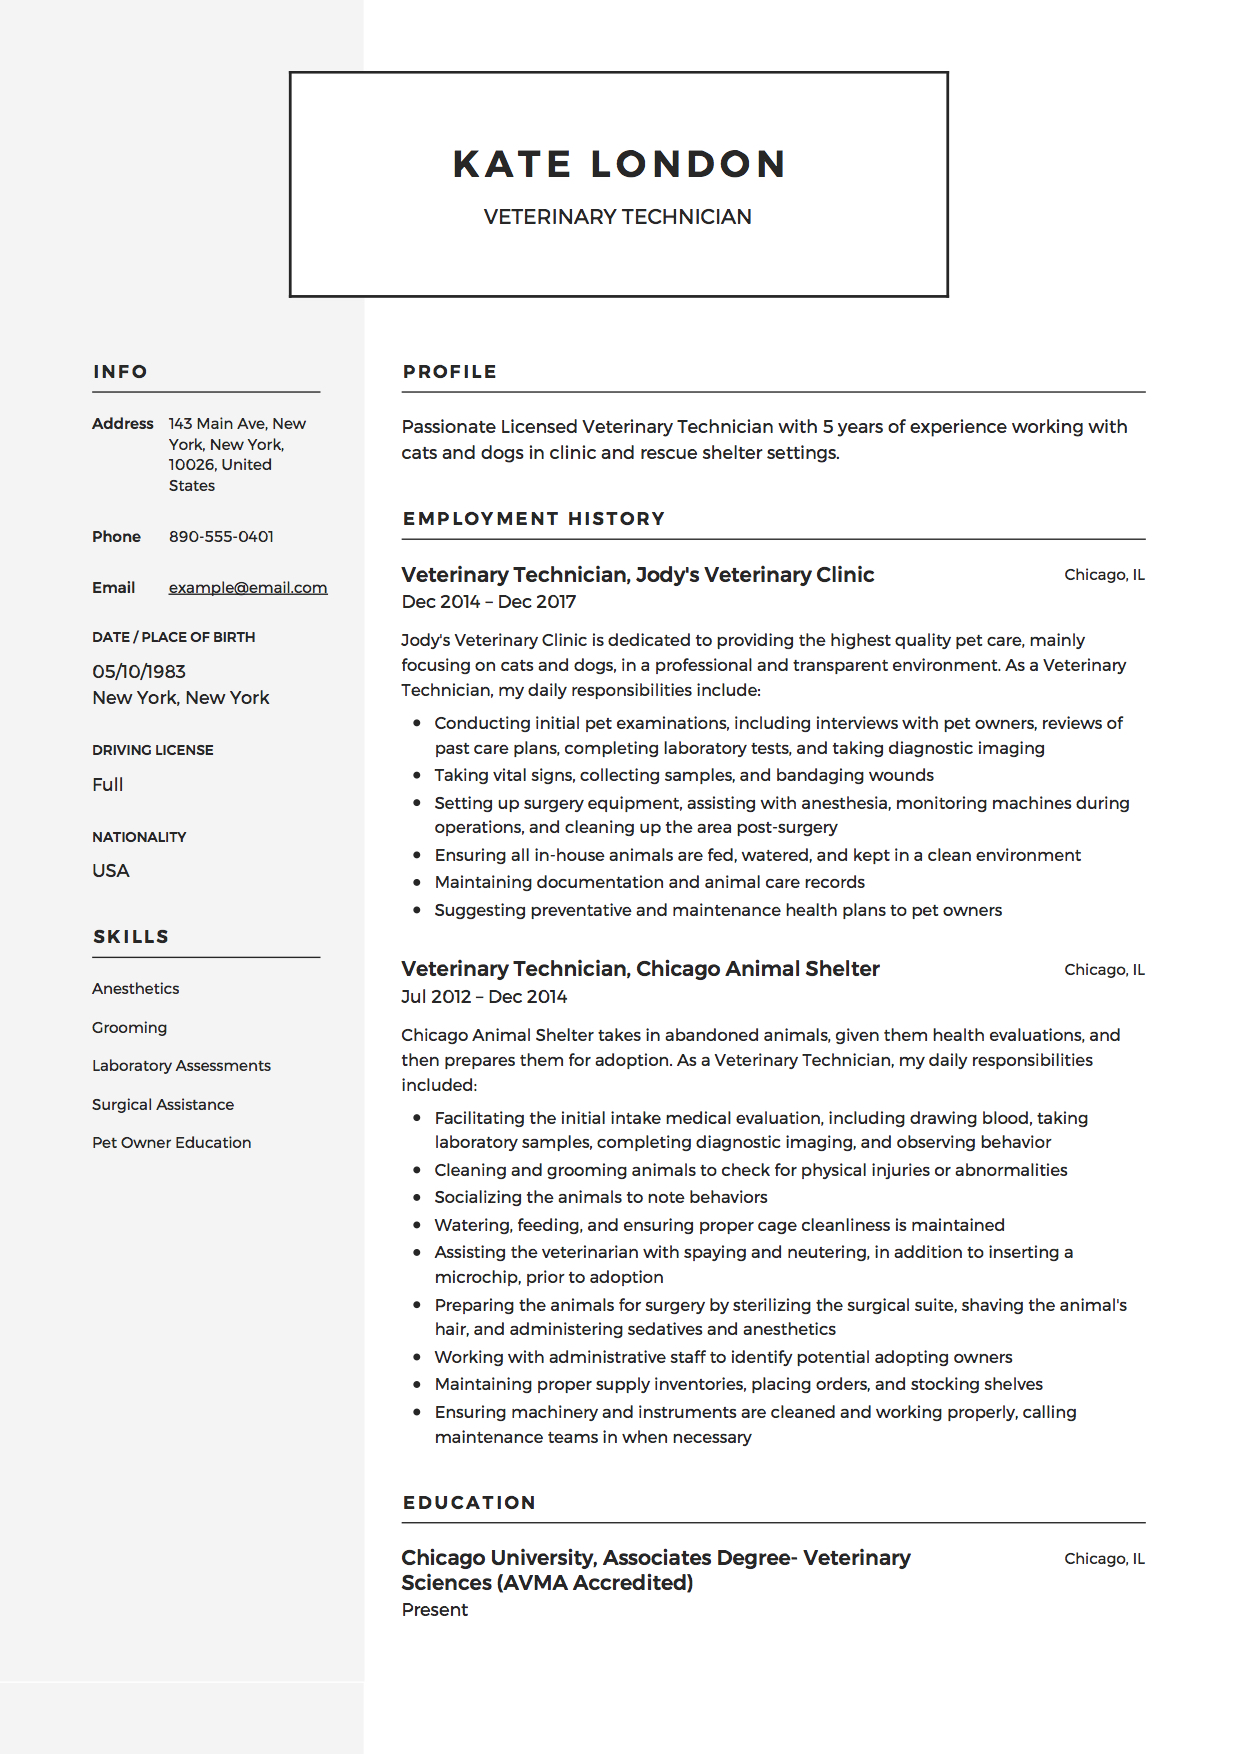 Veterinary Technician Resume Example  Veterinary Technician Resumes